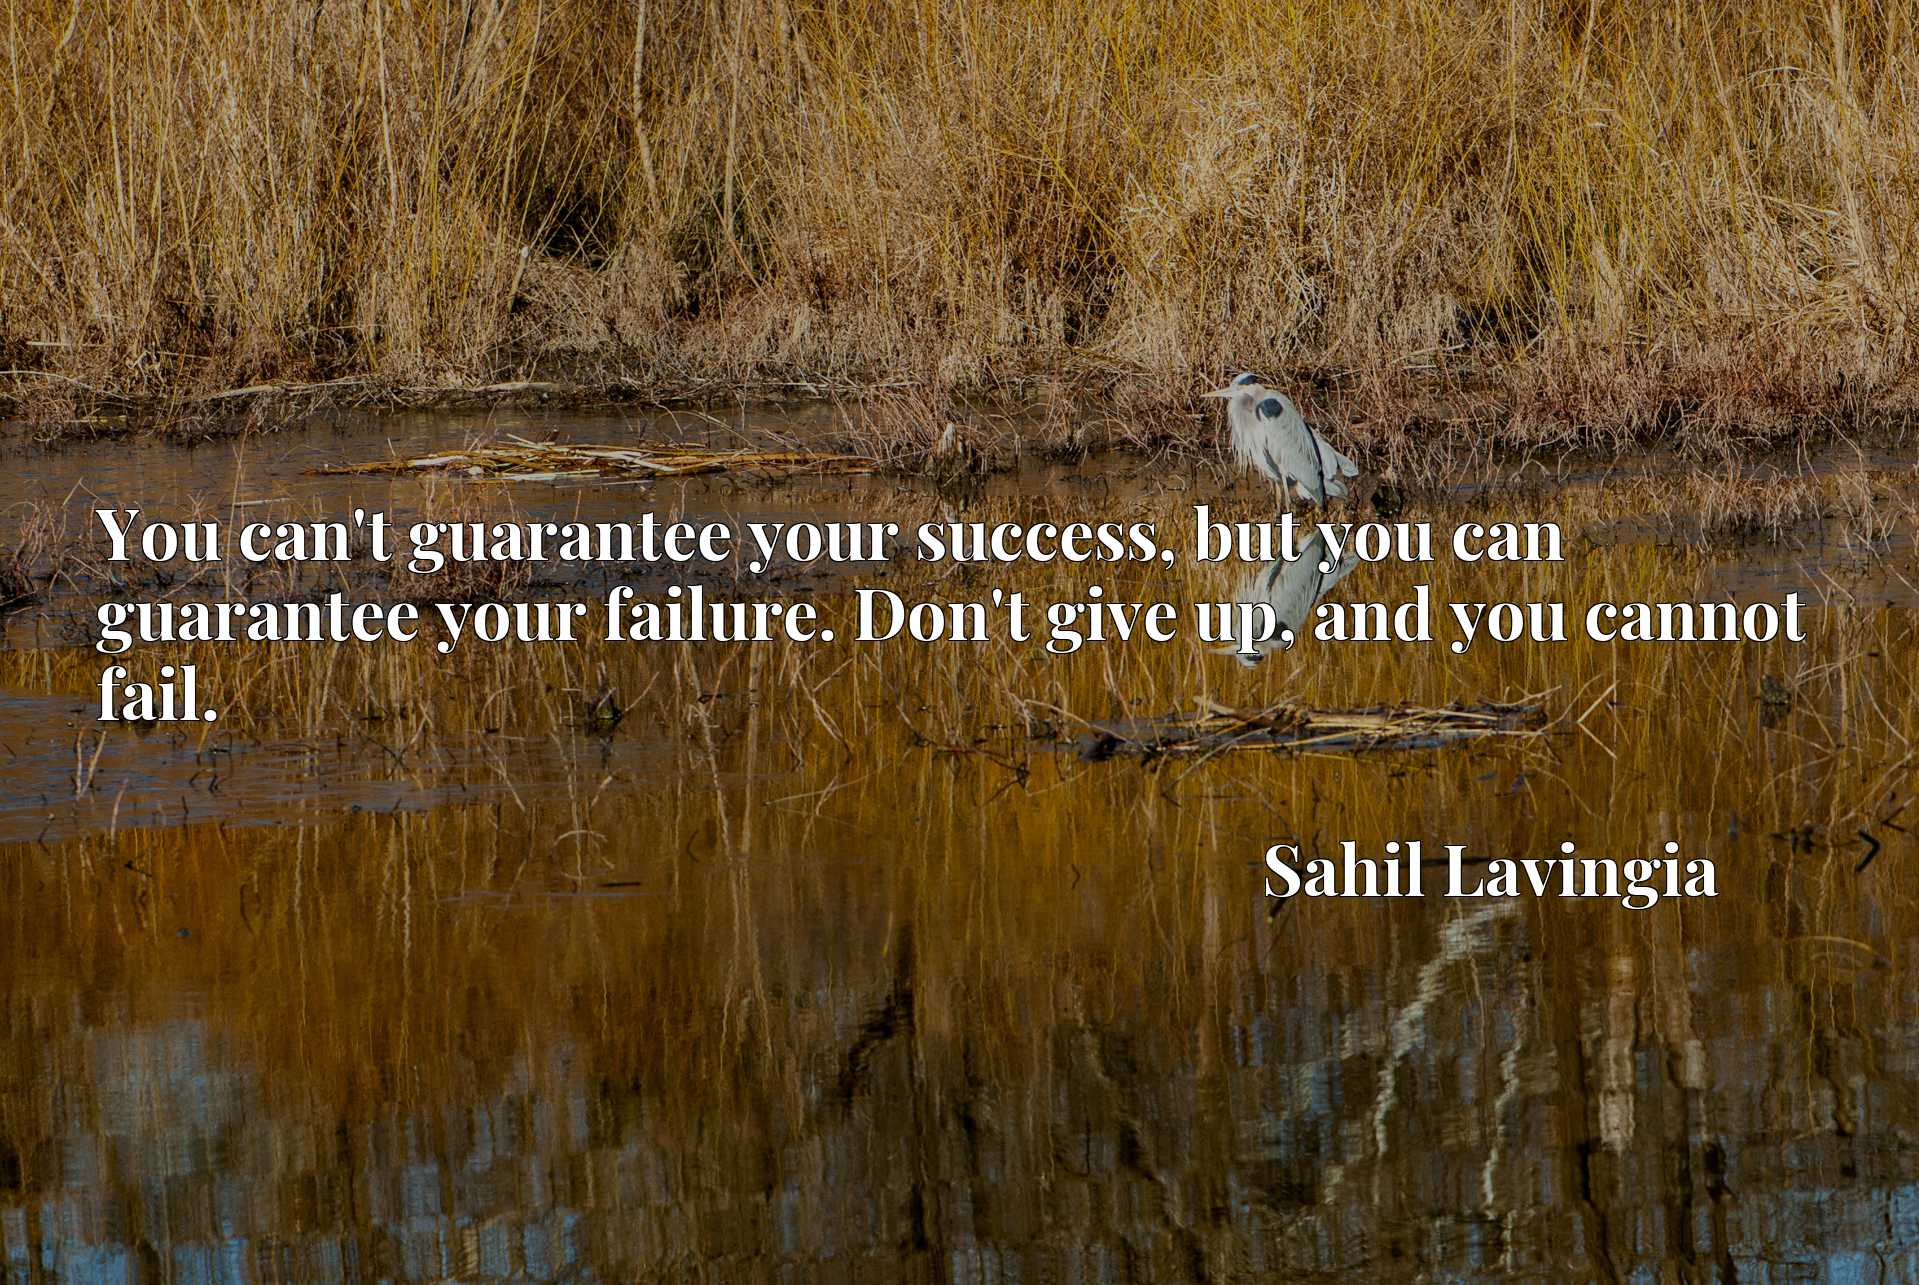 You can't guarantee your success, but you can guarantee your failure. Don't give up, and you cannot fail.